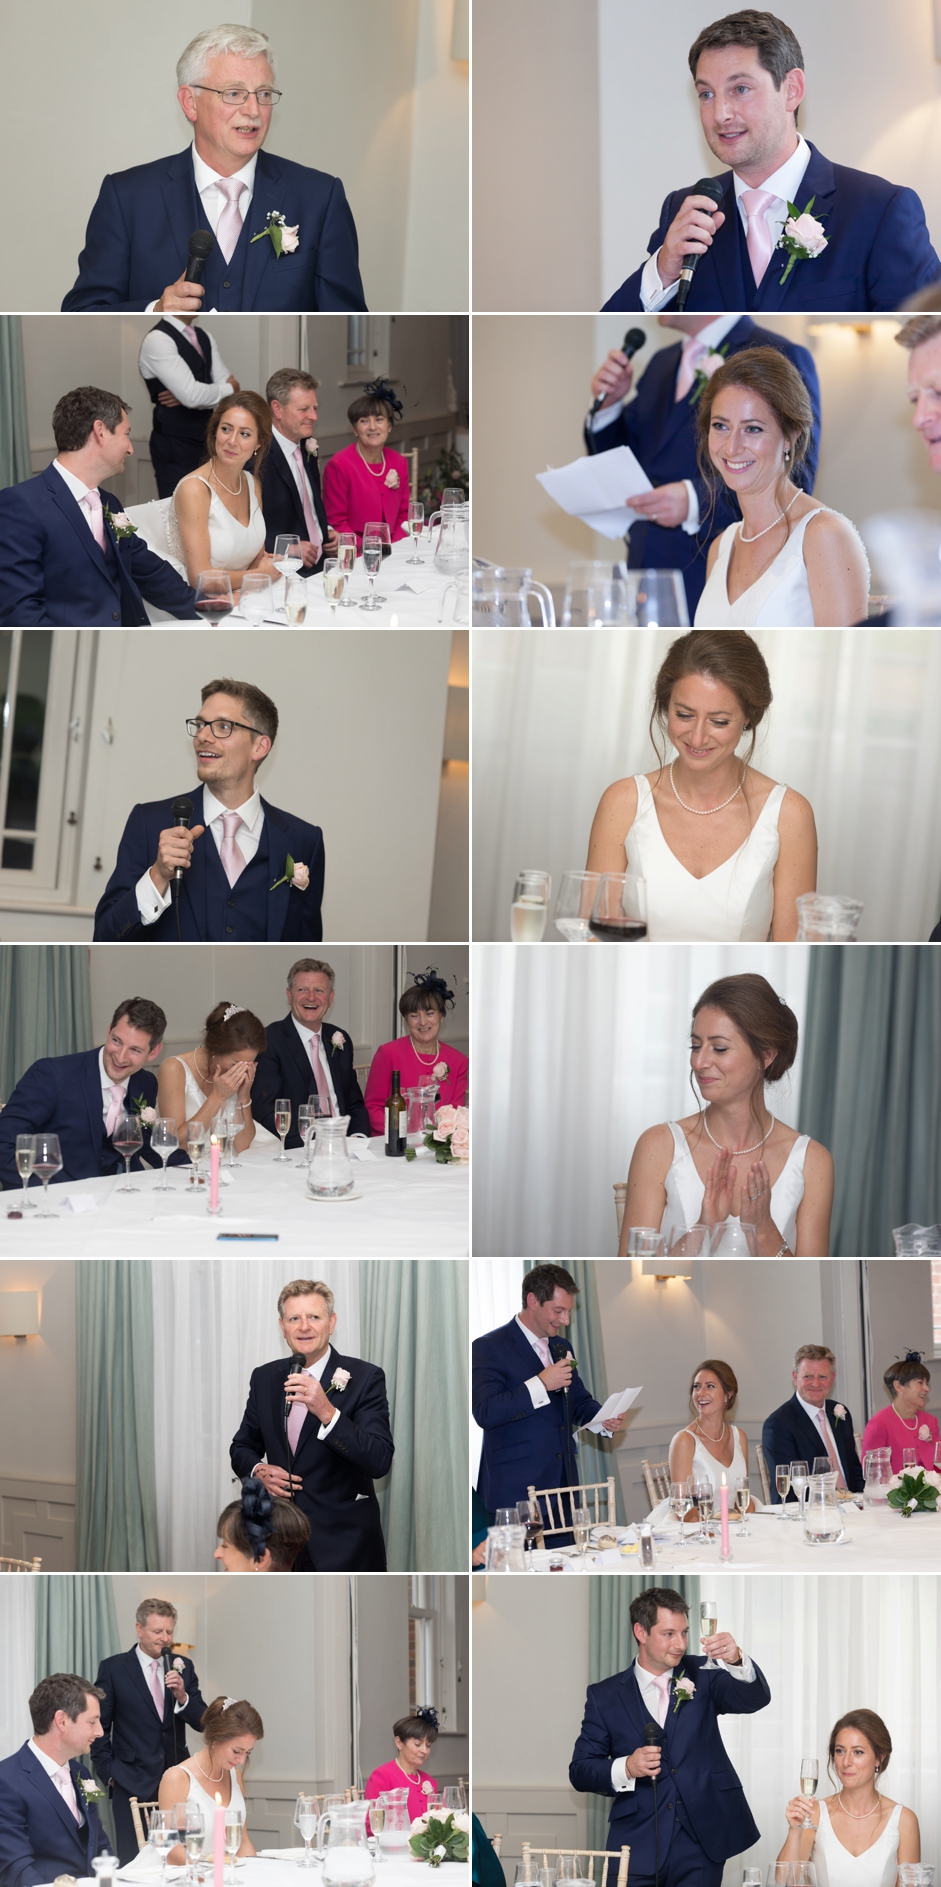 Wotton House wedding photography the speeches